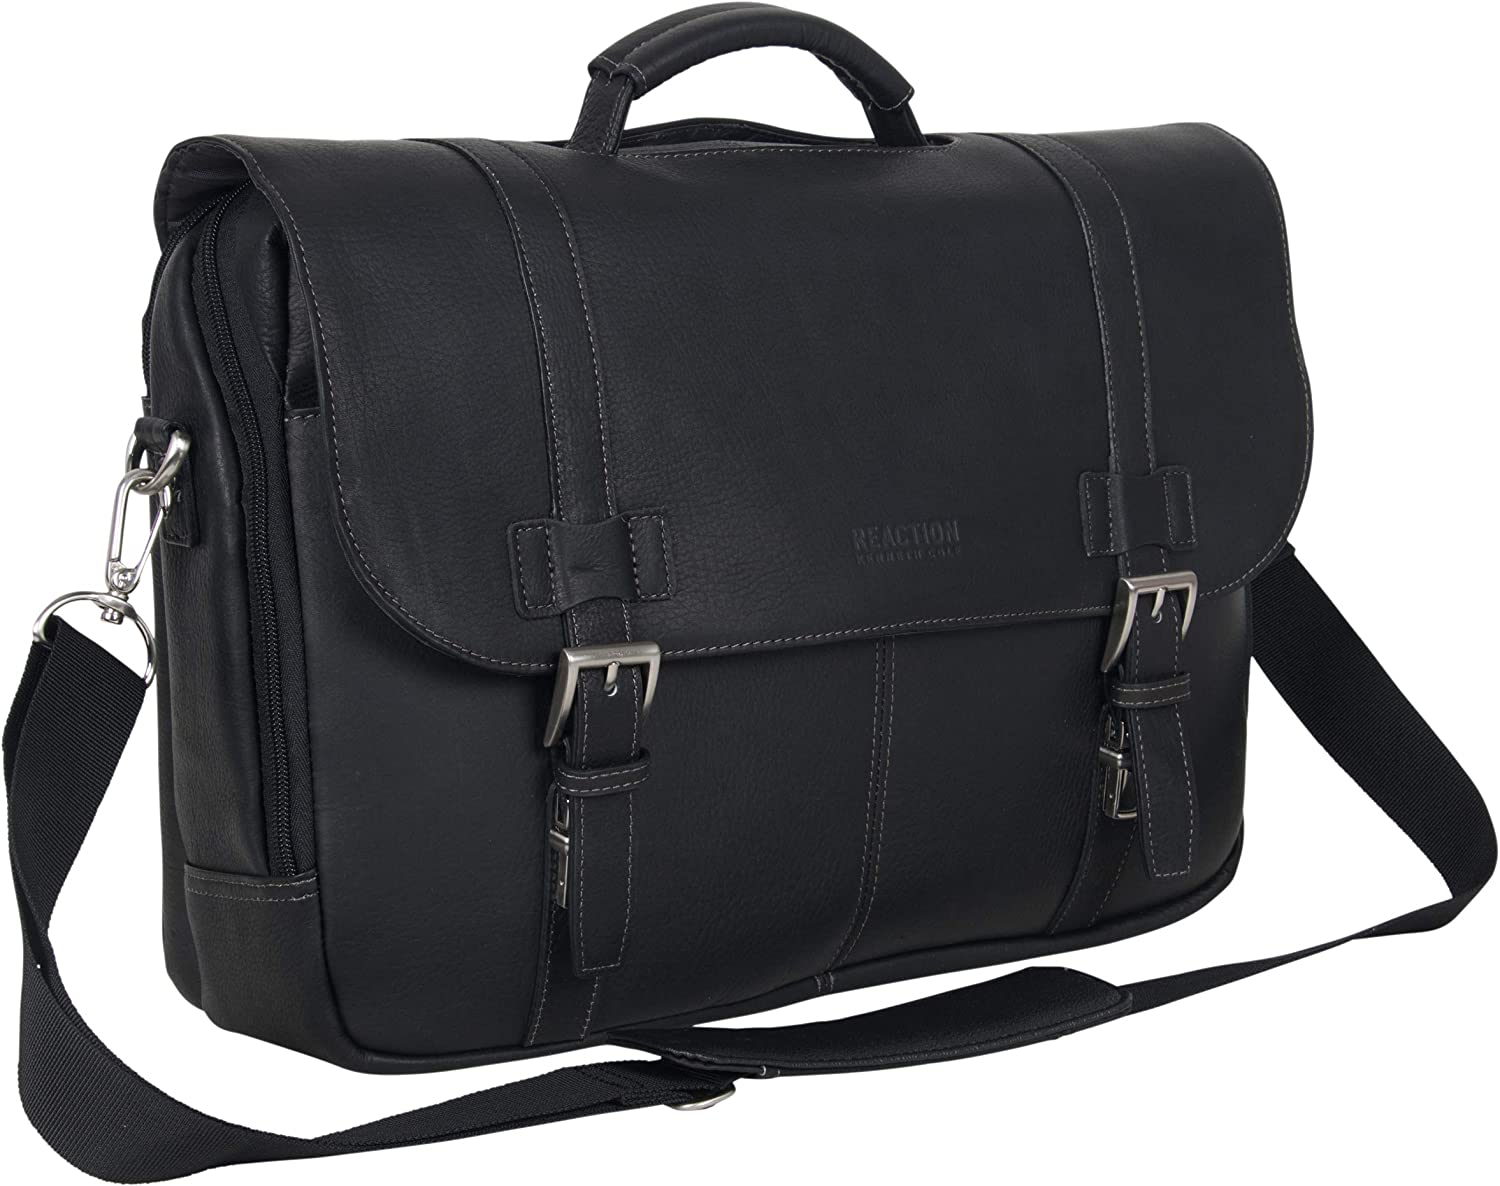 Kenneth Cole Reaction Show Full-Grain Colombian Leather Dual Compartment Flapover 15.6-inch Laptop Business Portfolio, Black, One Size